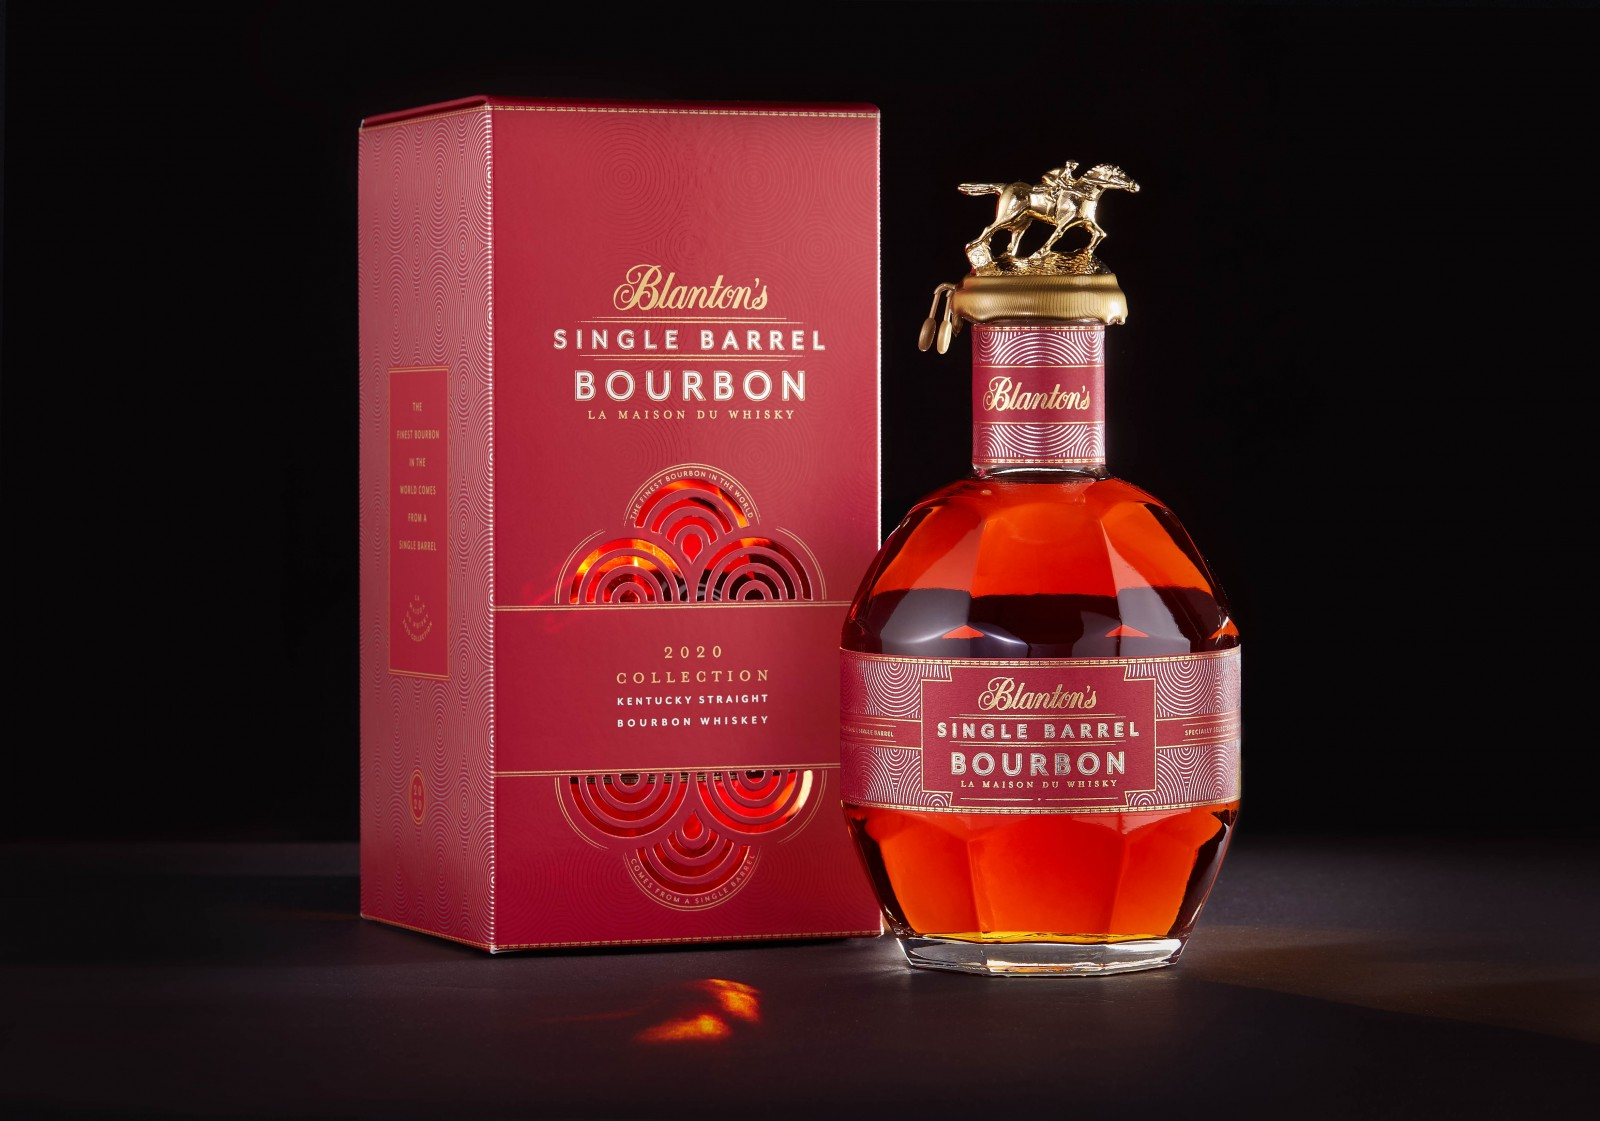 Packaging Design for Blanton's 2020 Limited Edition by COHO Creative